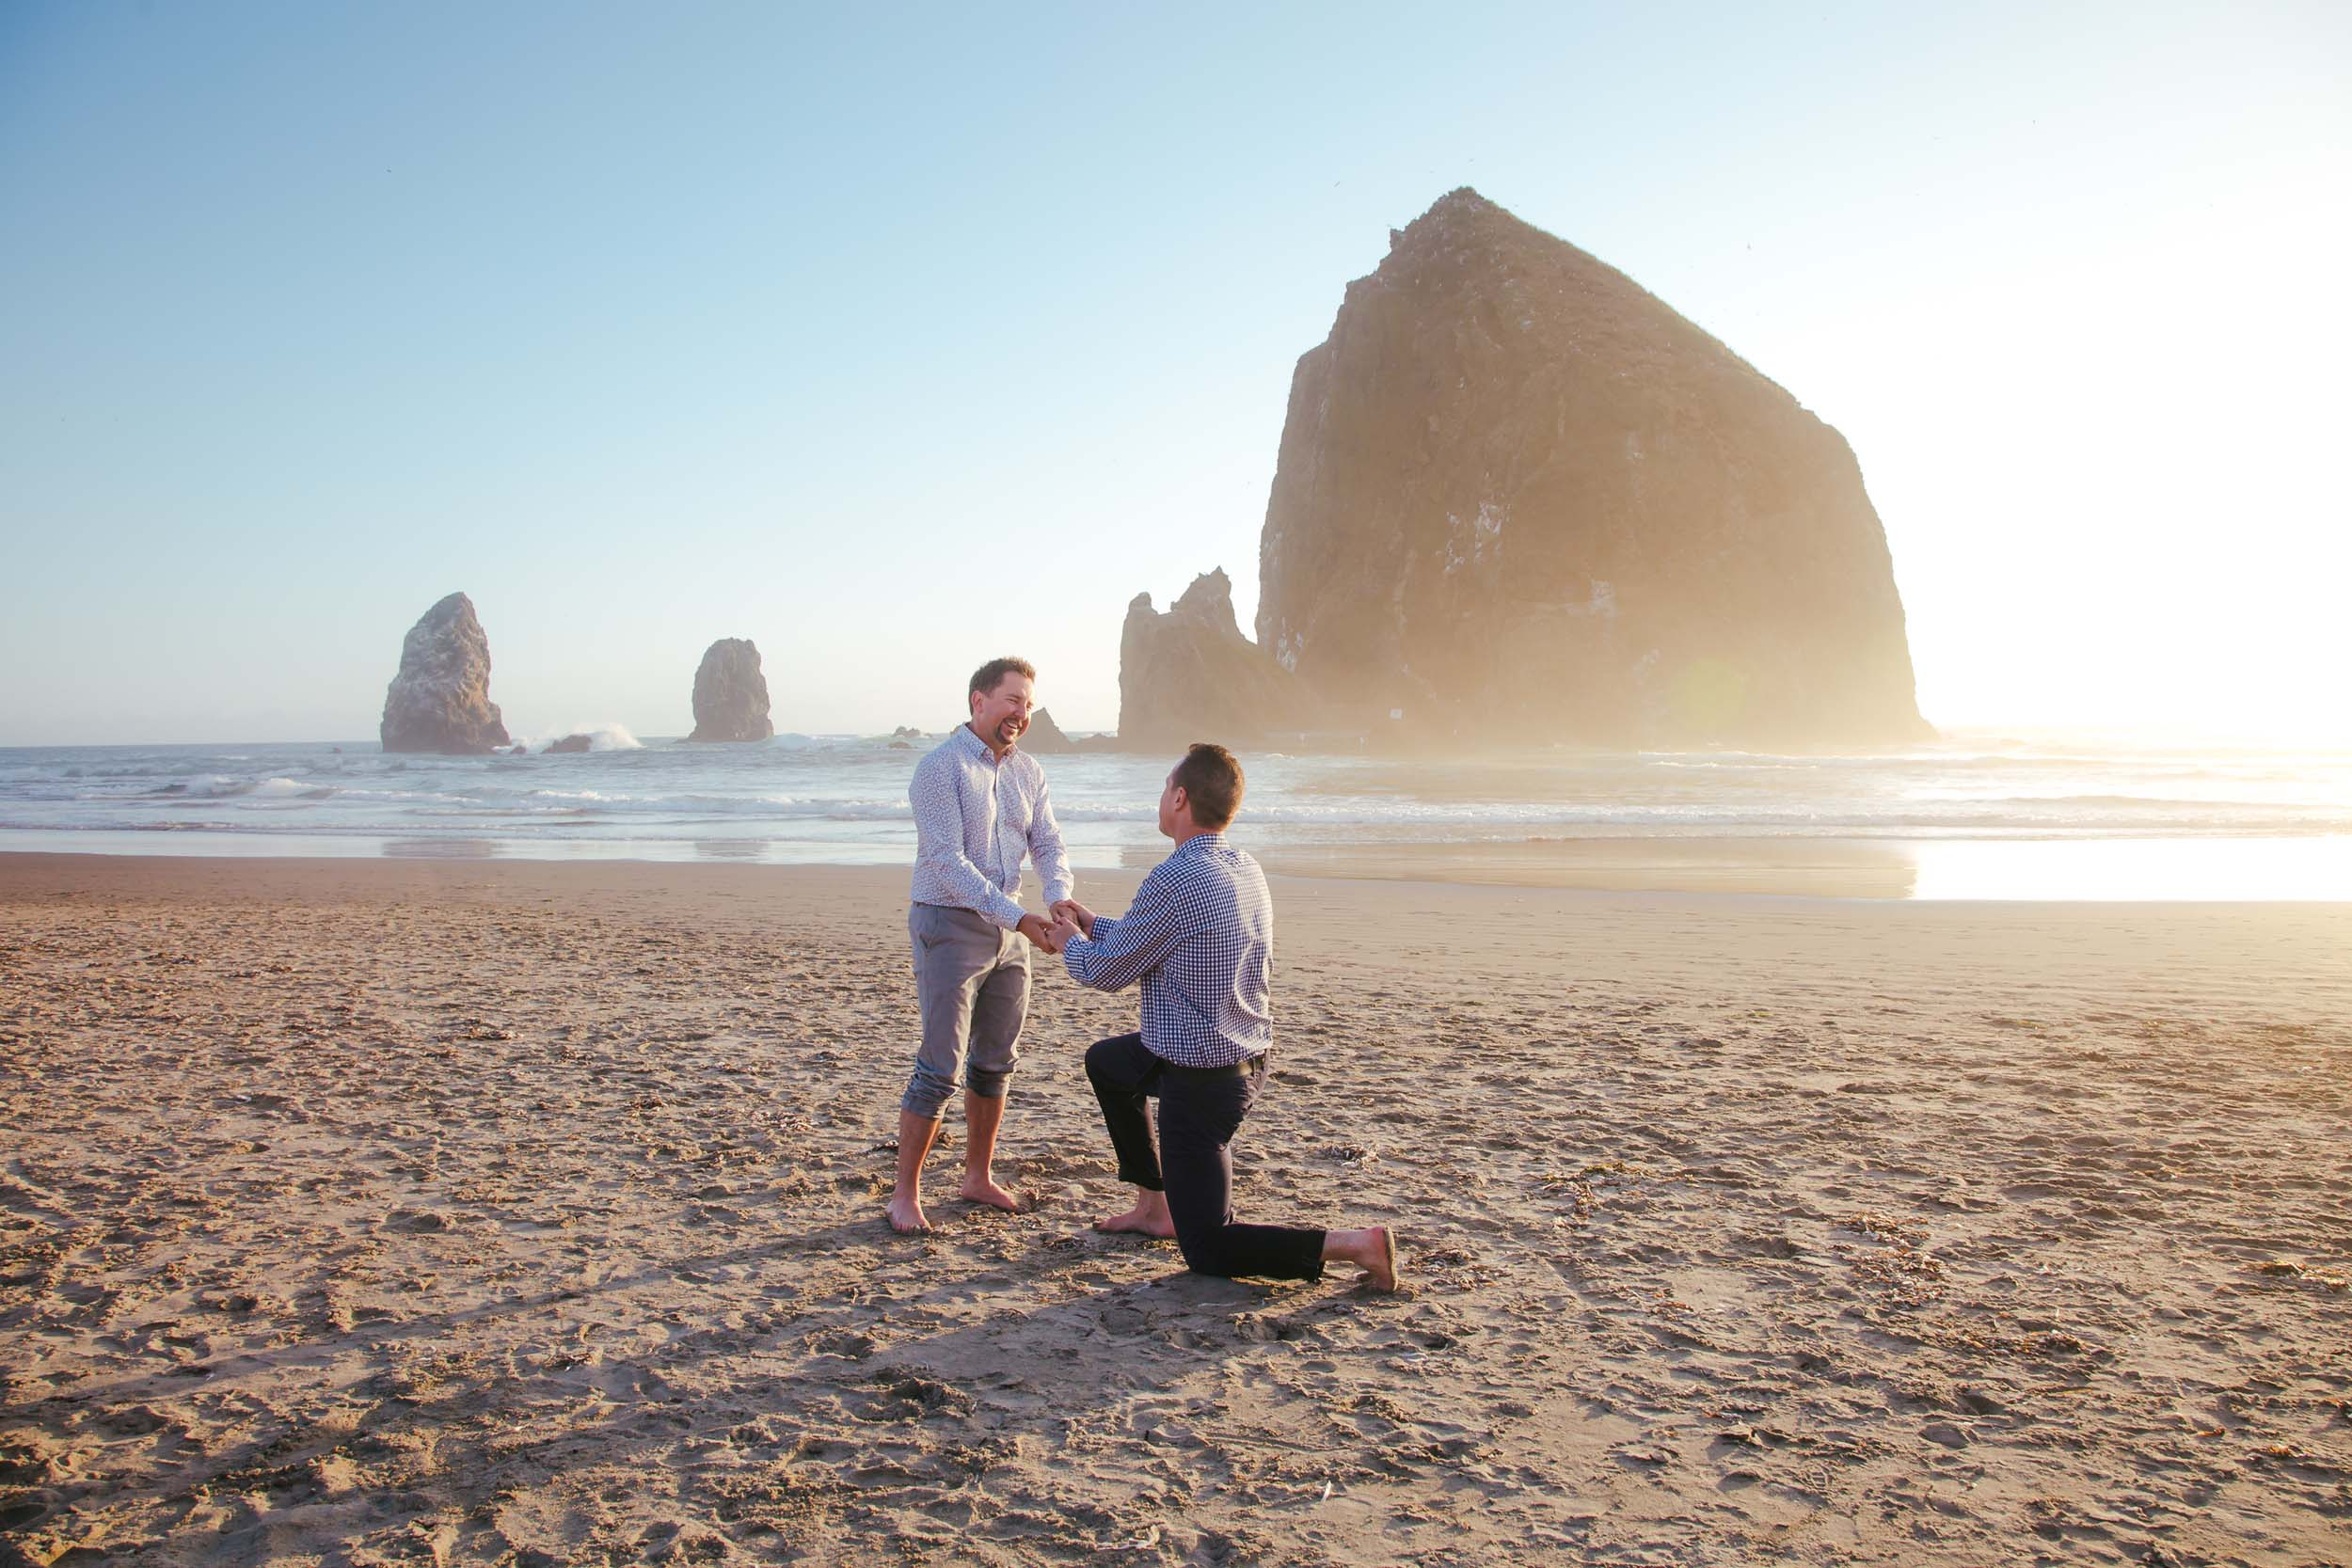 A Cannon Beach Proposal Straight Out of a Dream